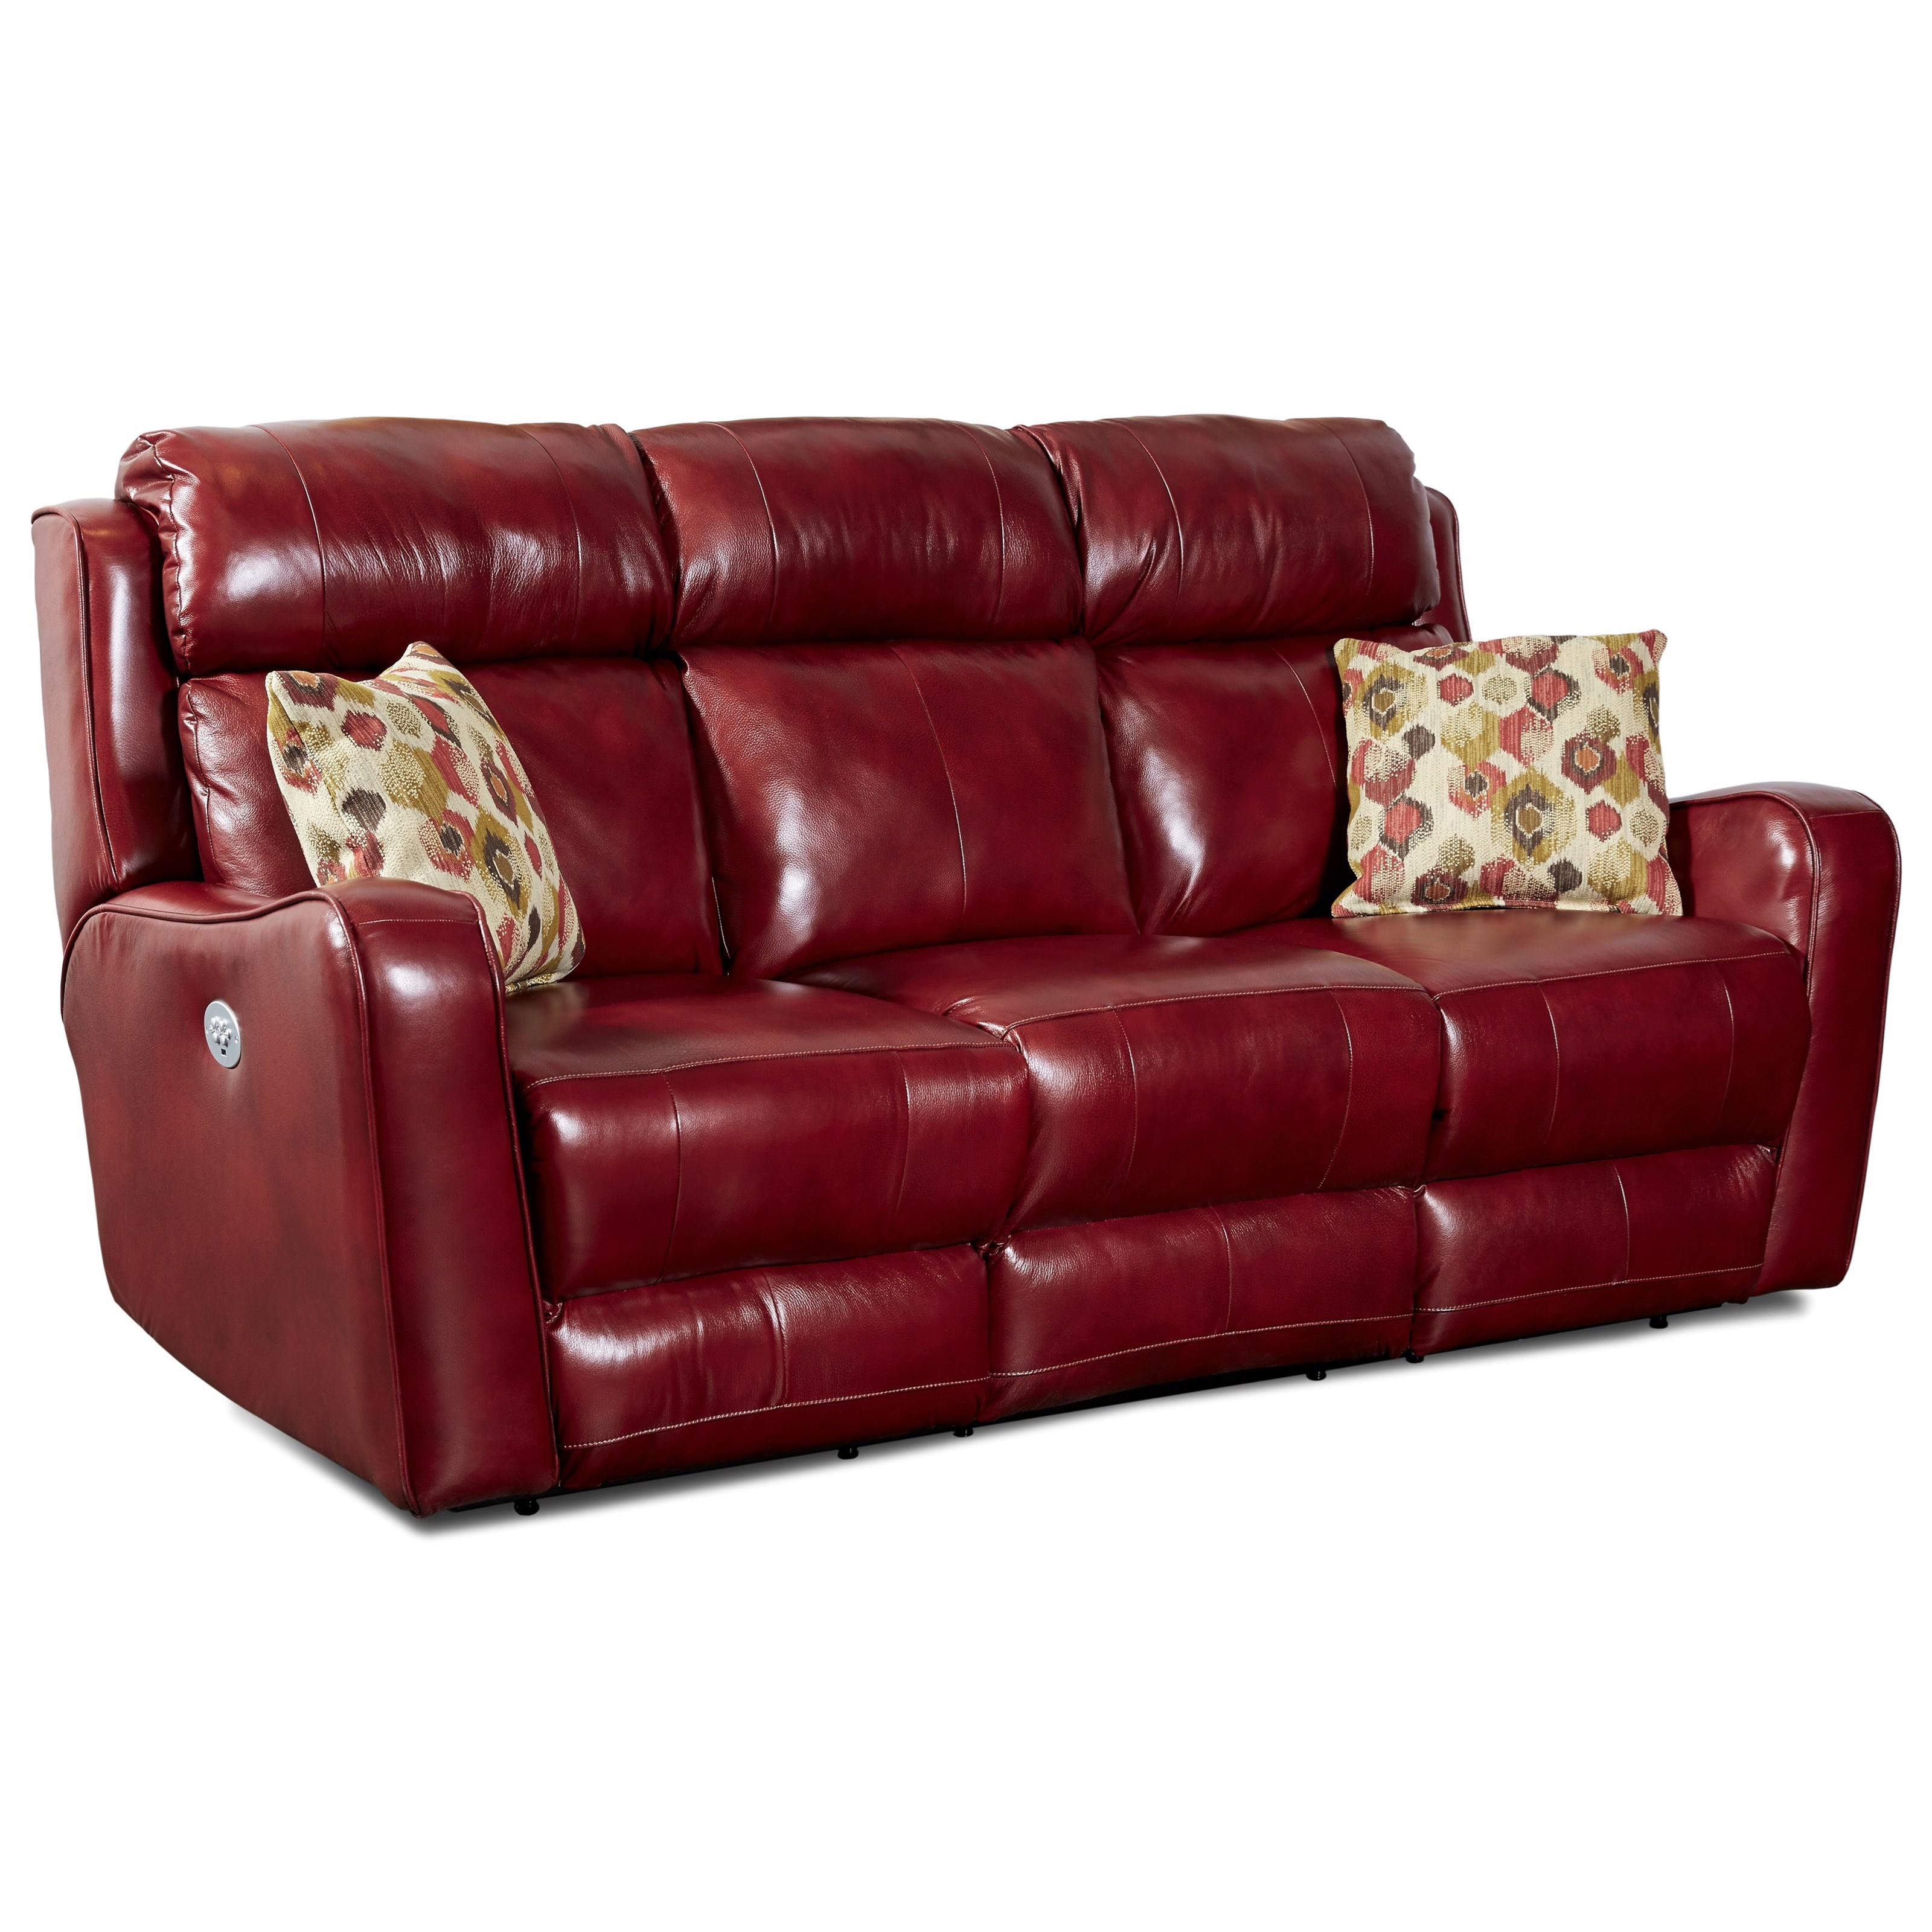 Comfortzone First Class 718 Double Reclining Sofa With Pillows Power Headrest Ruby Gordon